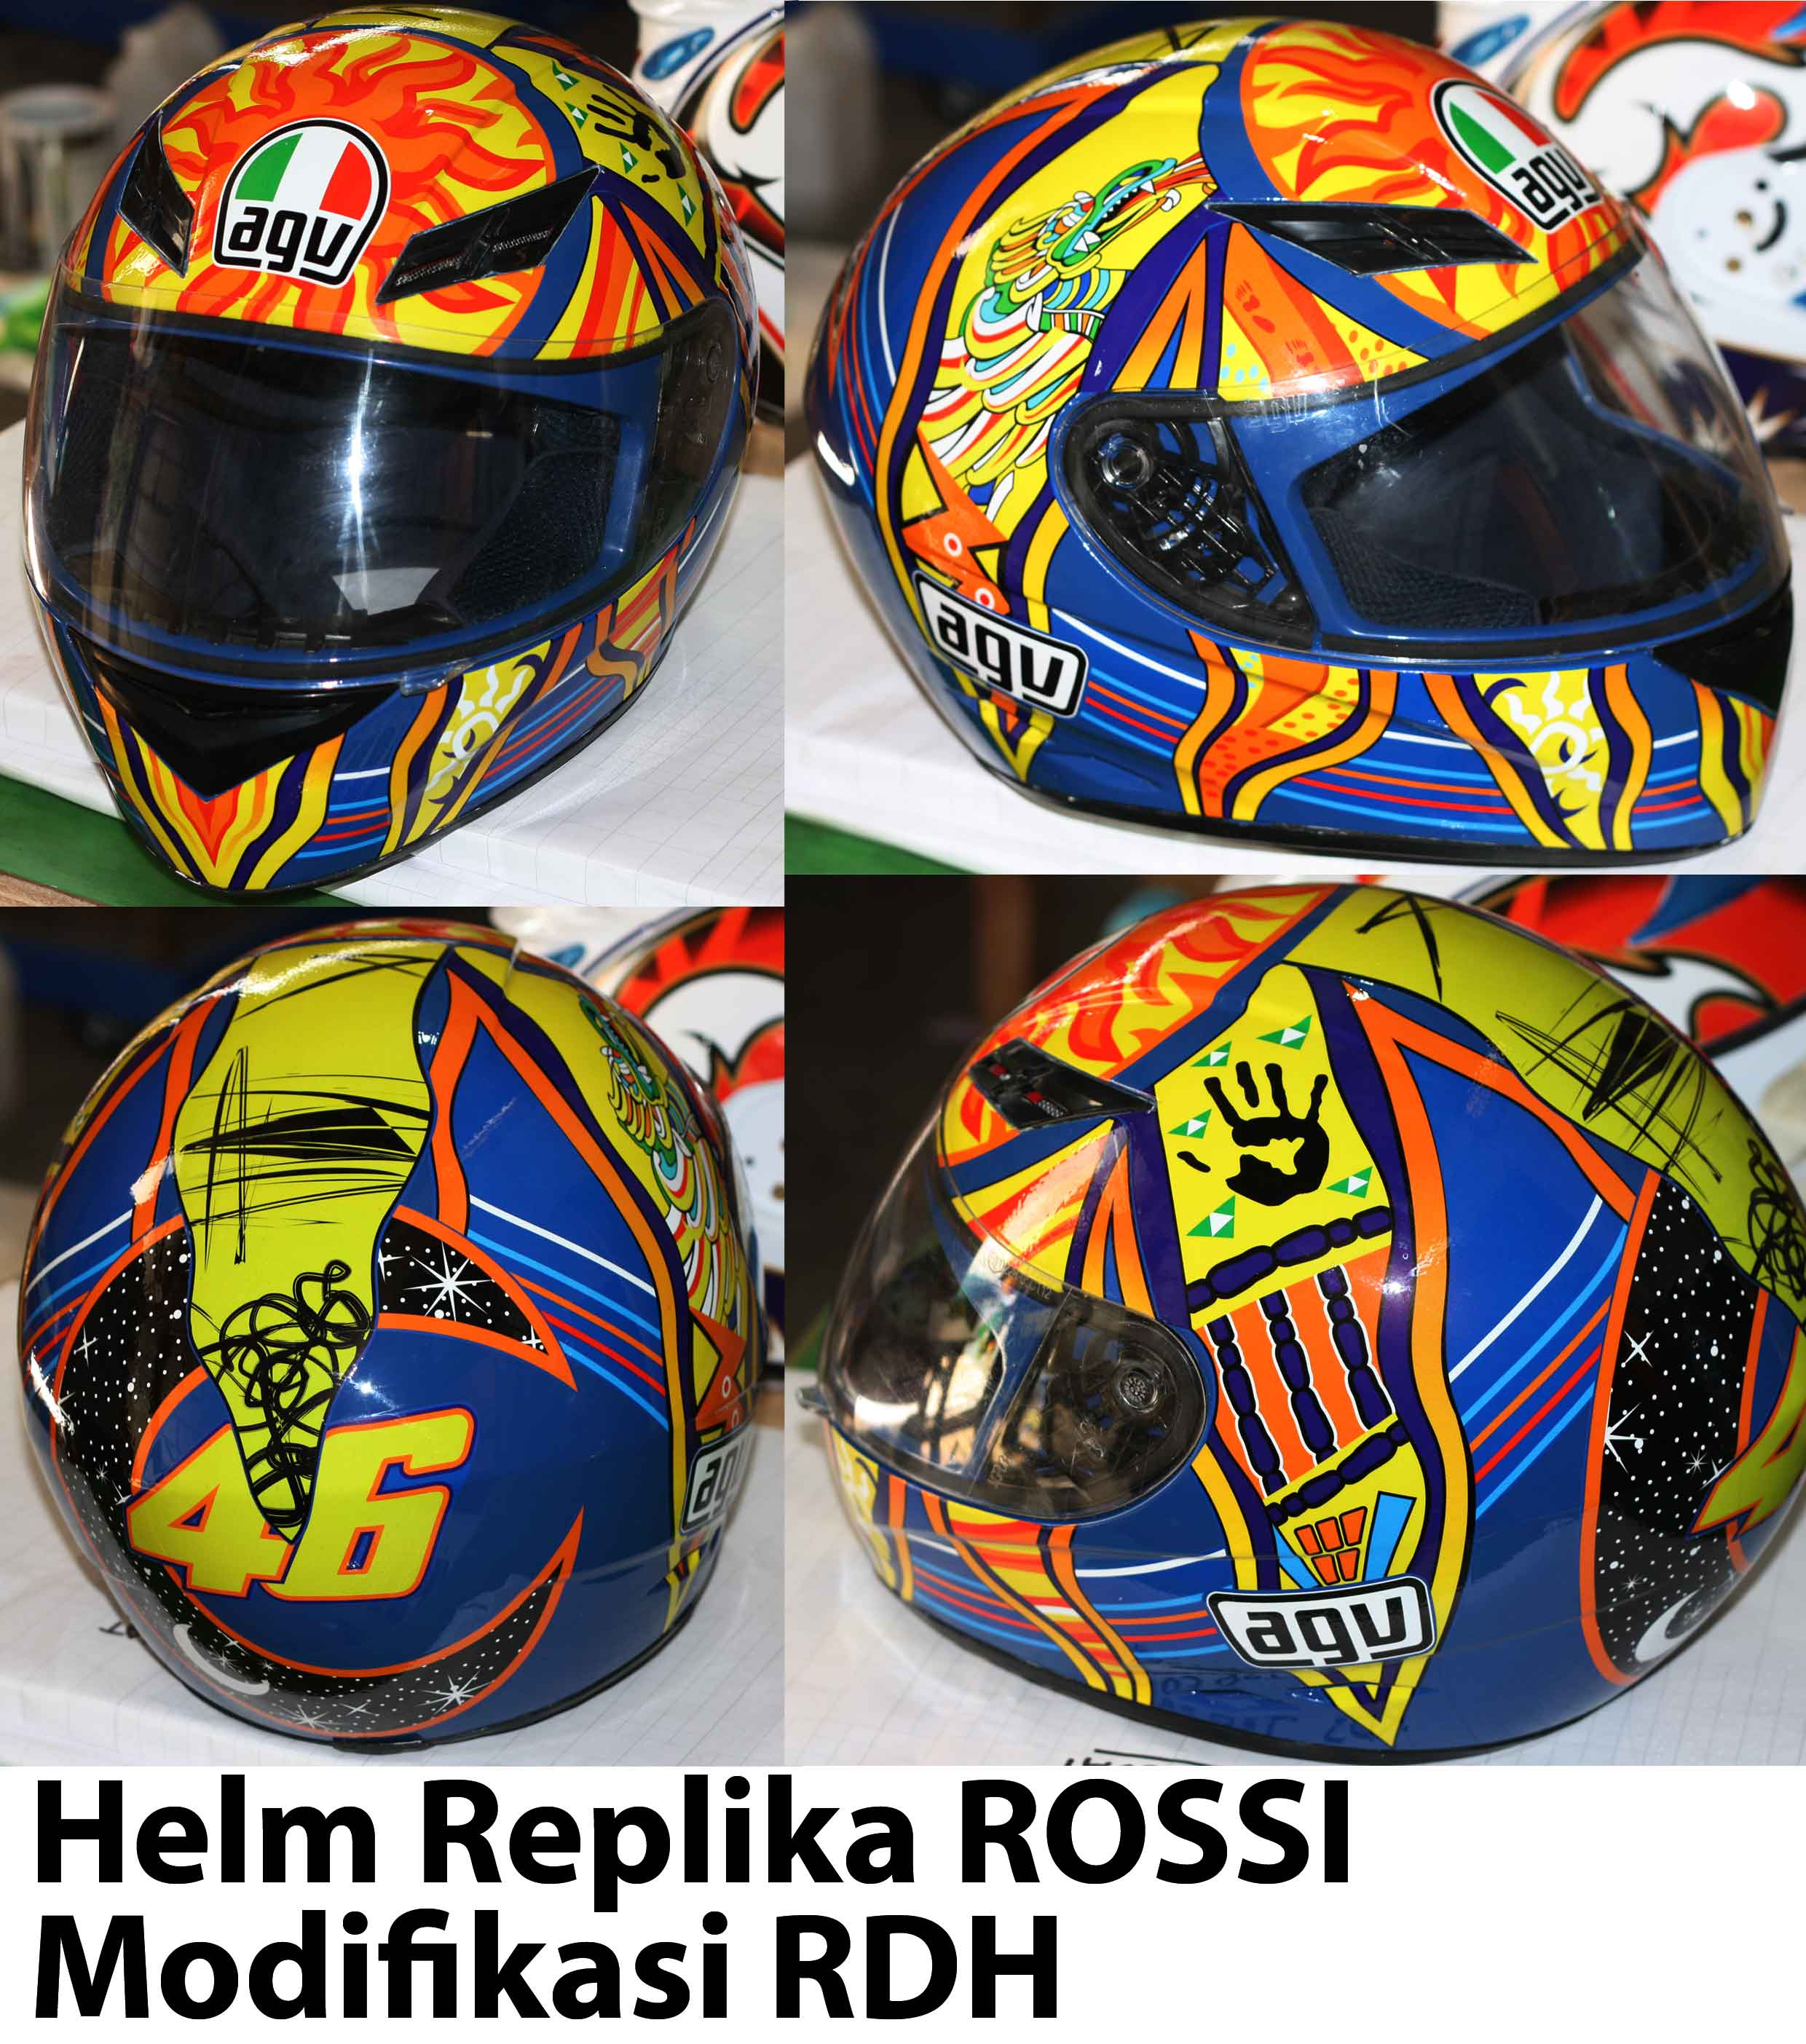 HELM REPLIKA ROSSI MATAHARI by RDH  CUSTOM HELMET FOR